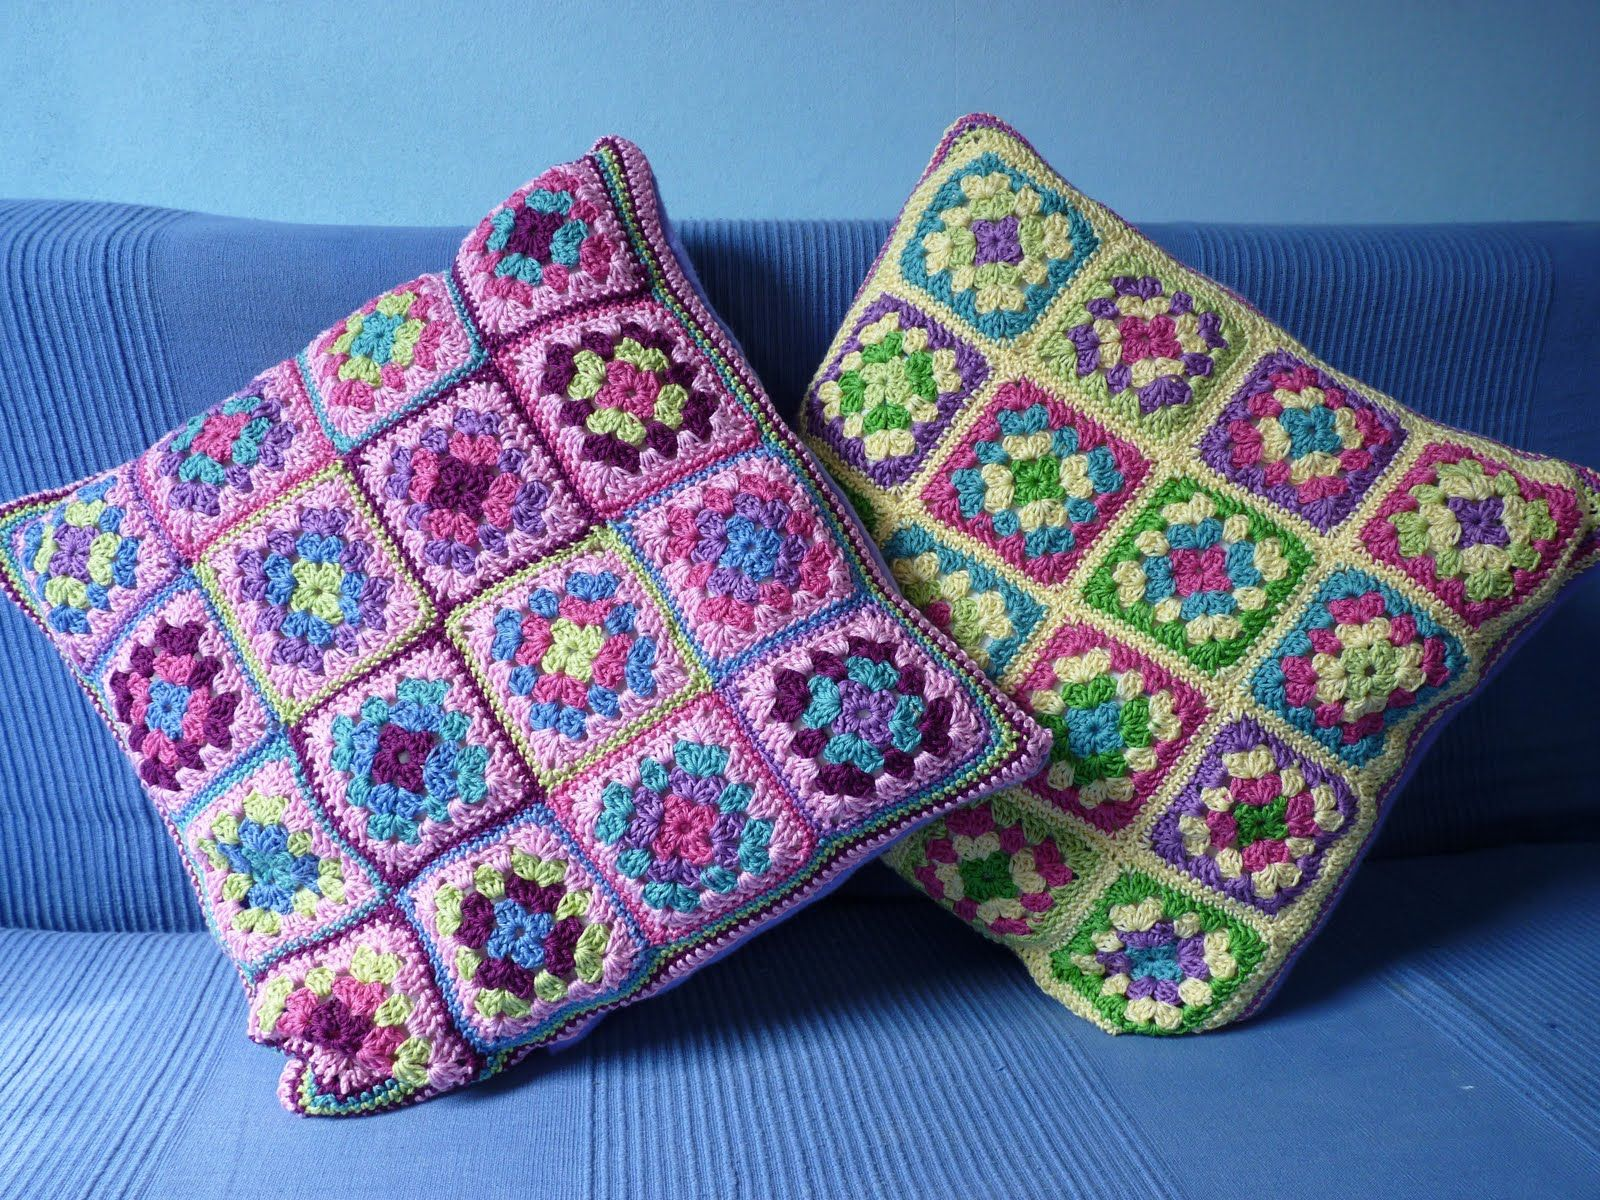 Aren't these gorgeous! Lots more to find on this blog - The Adventures of the Gingerbread Lady. :-)